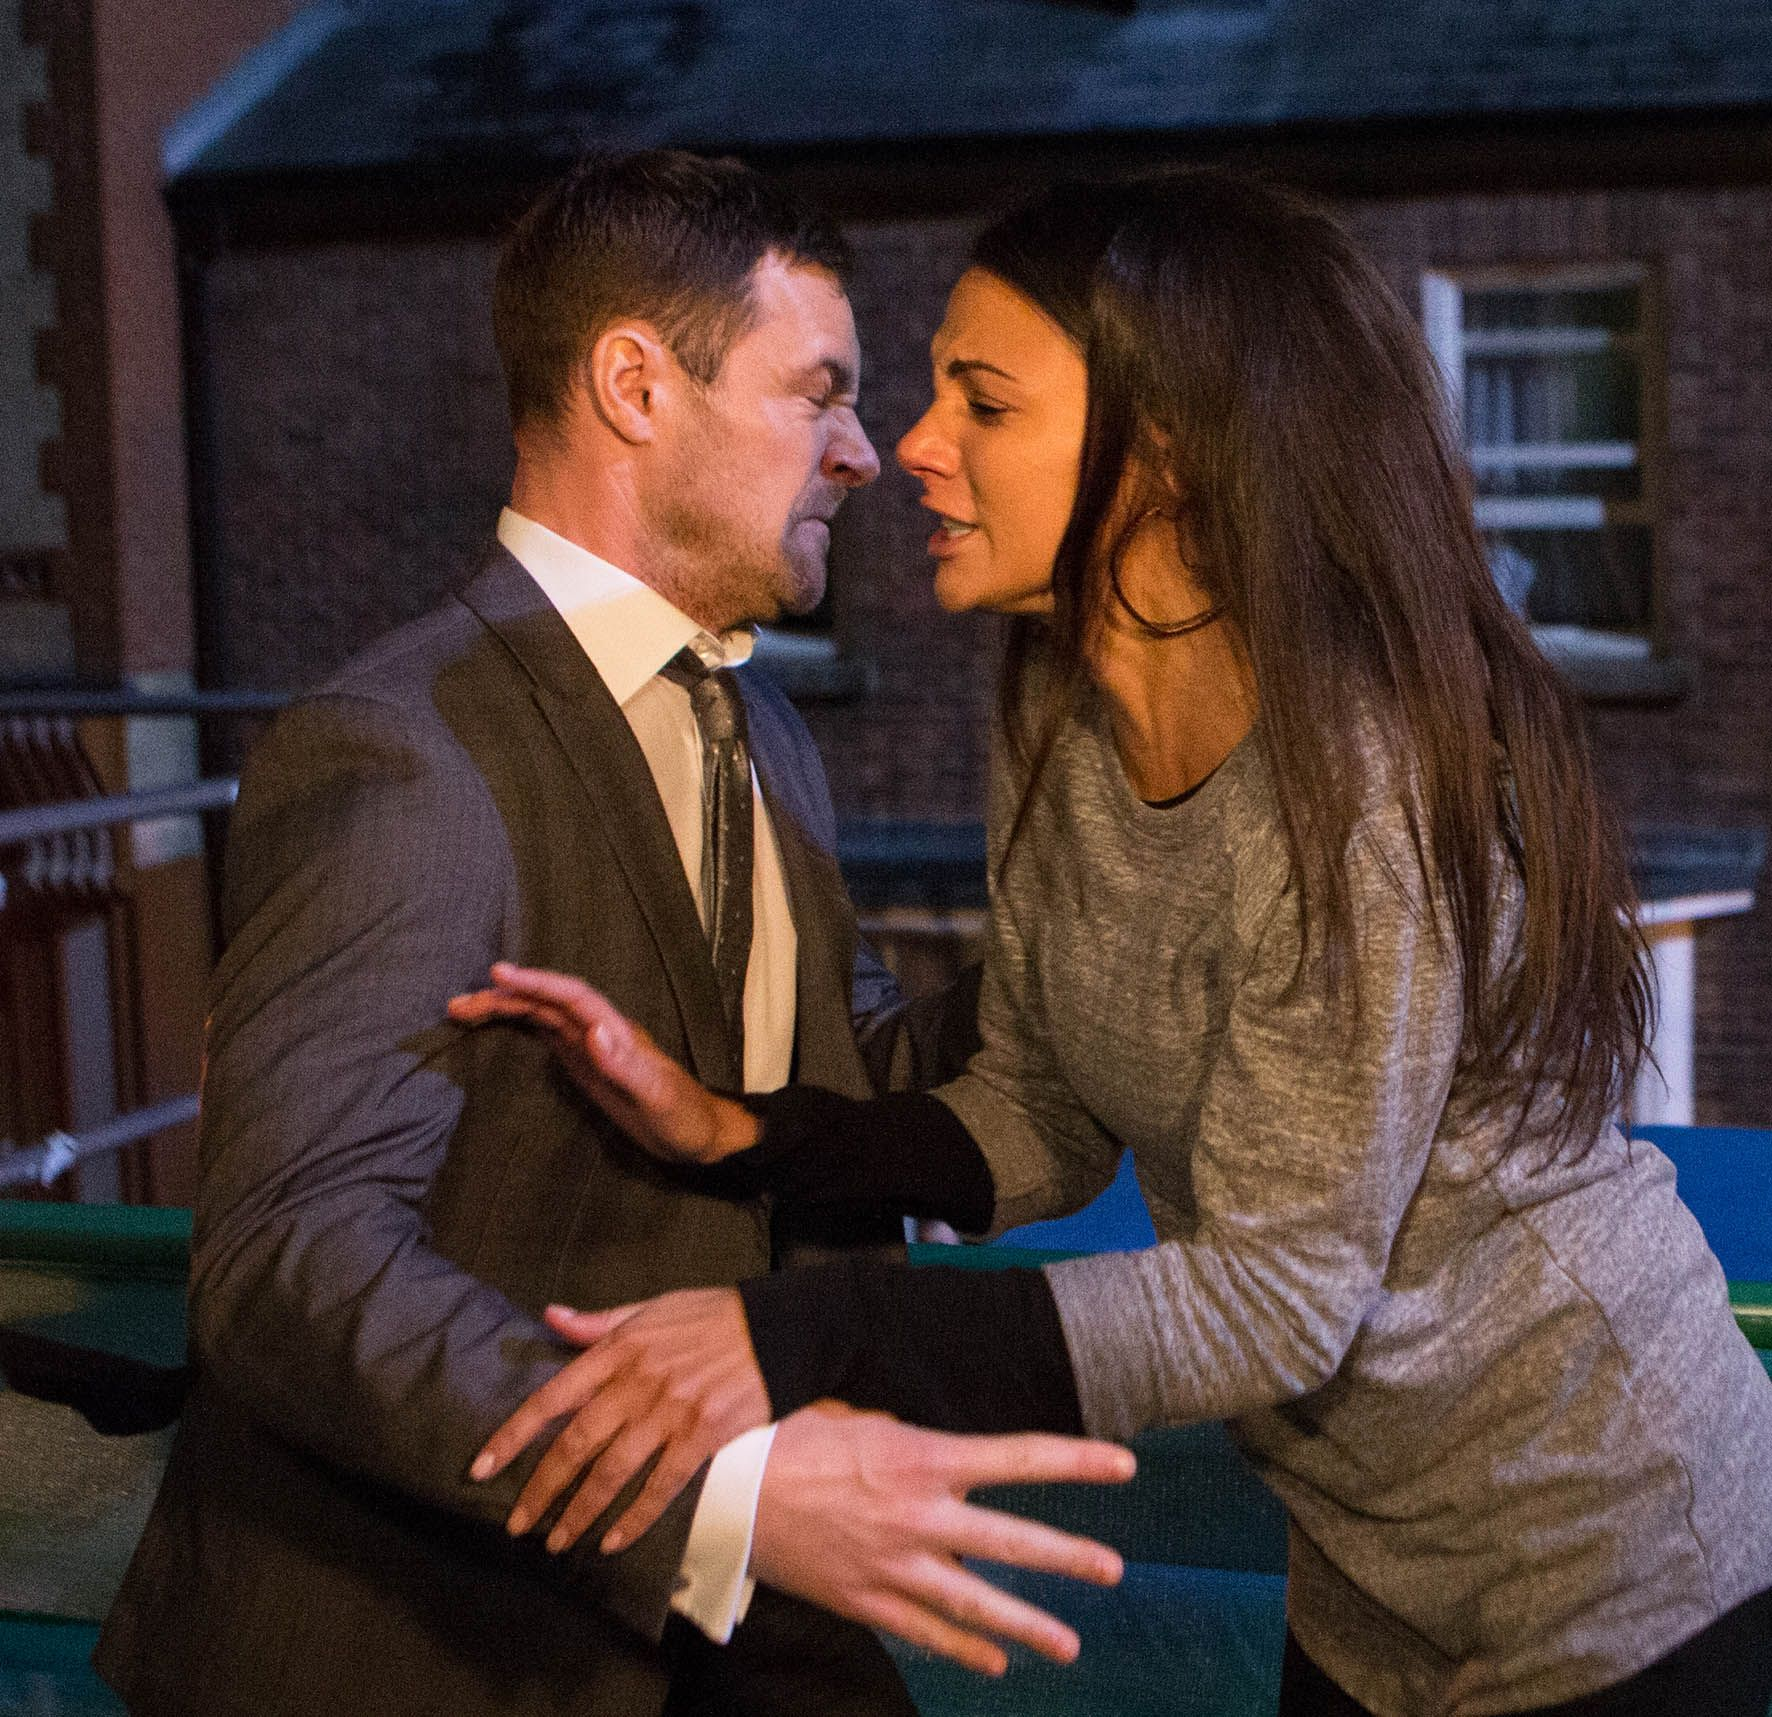 Who is tina from corrie dating